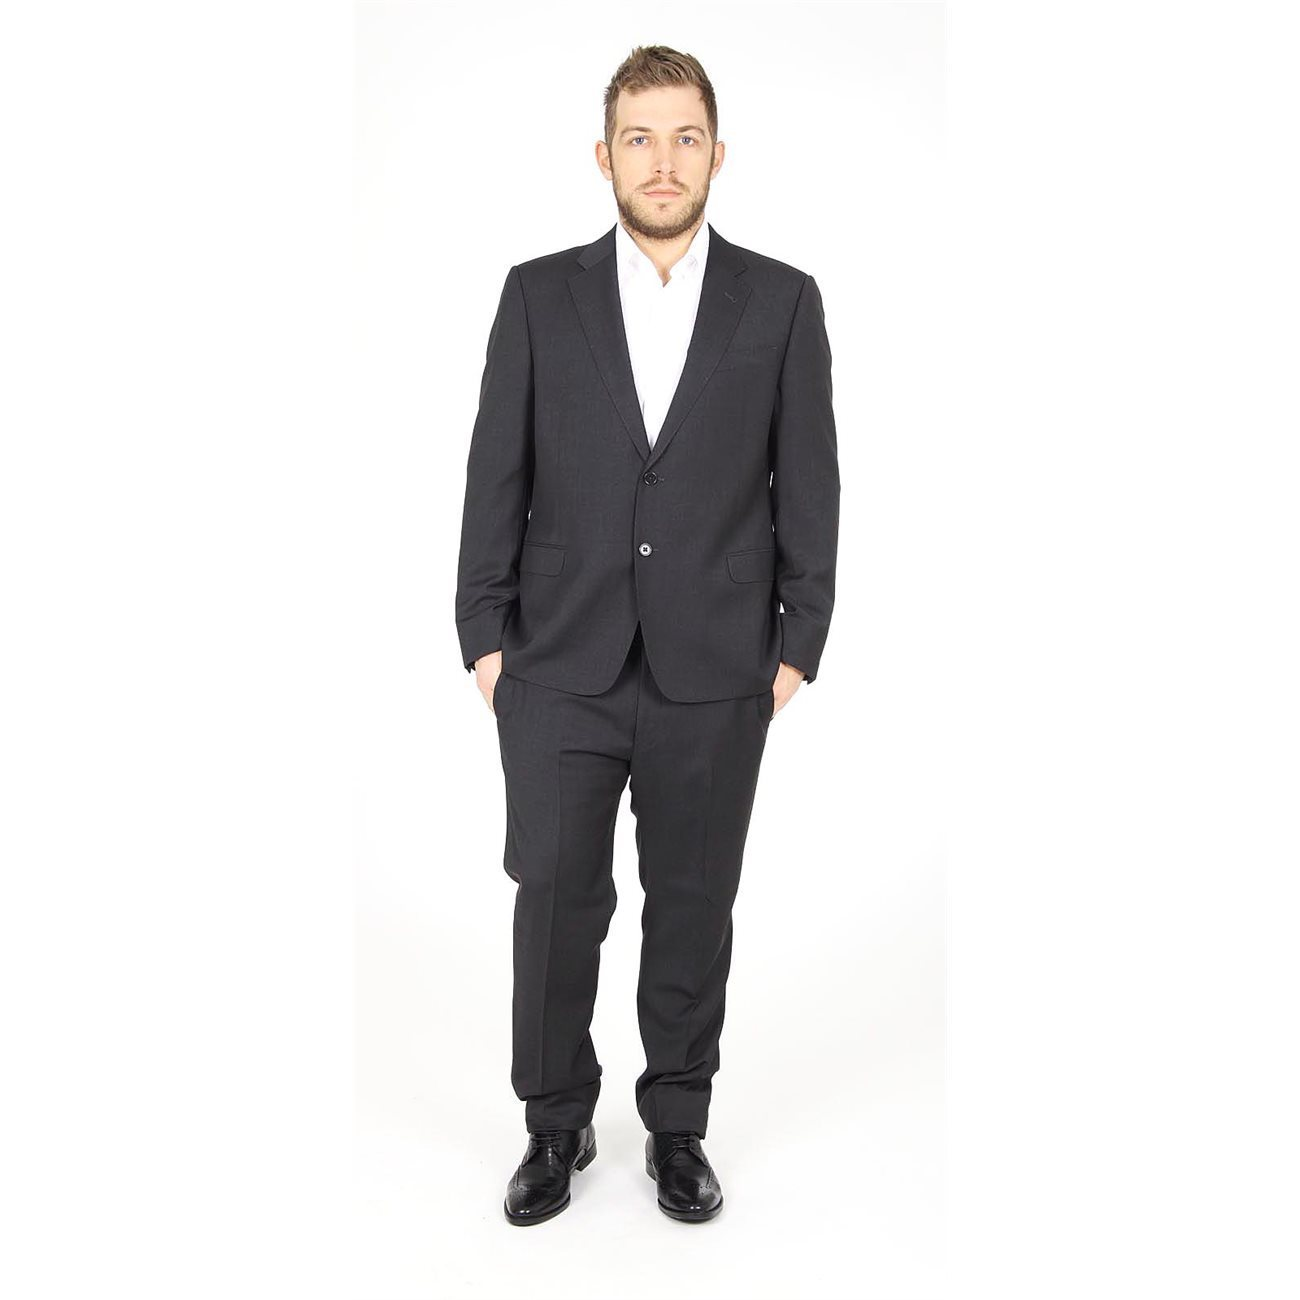 Primary image for Armani Collezioni mens suit PCVFAB 0C003 690